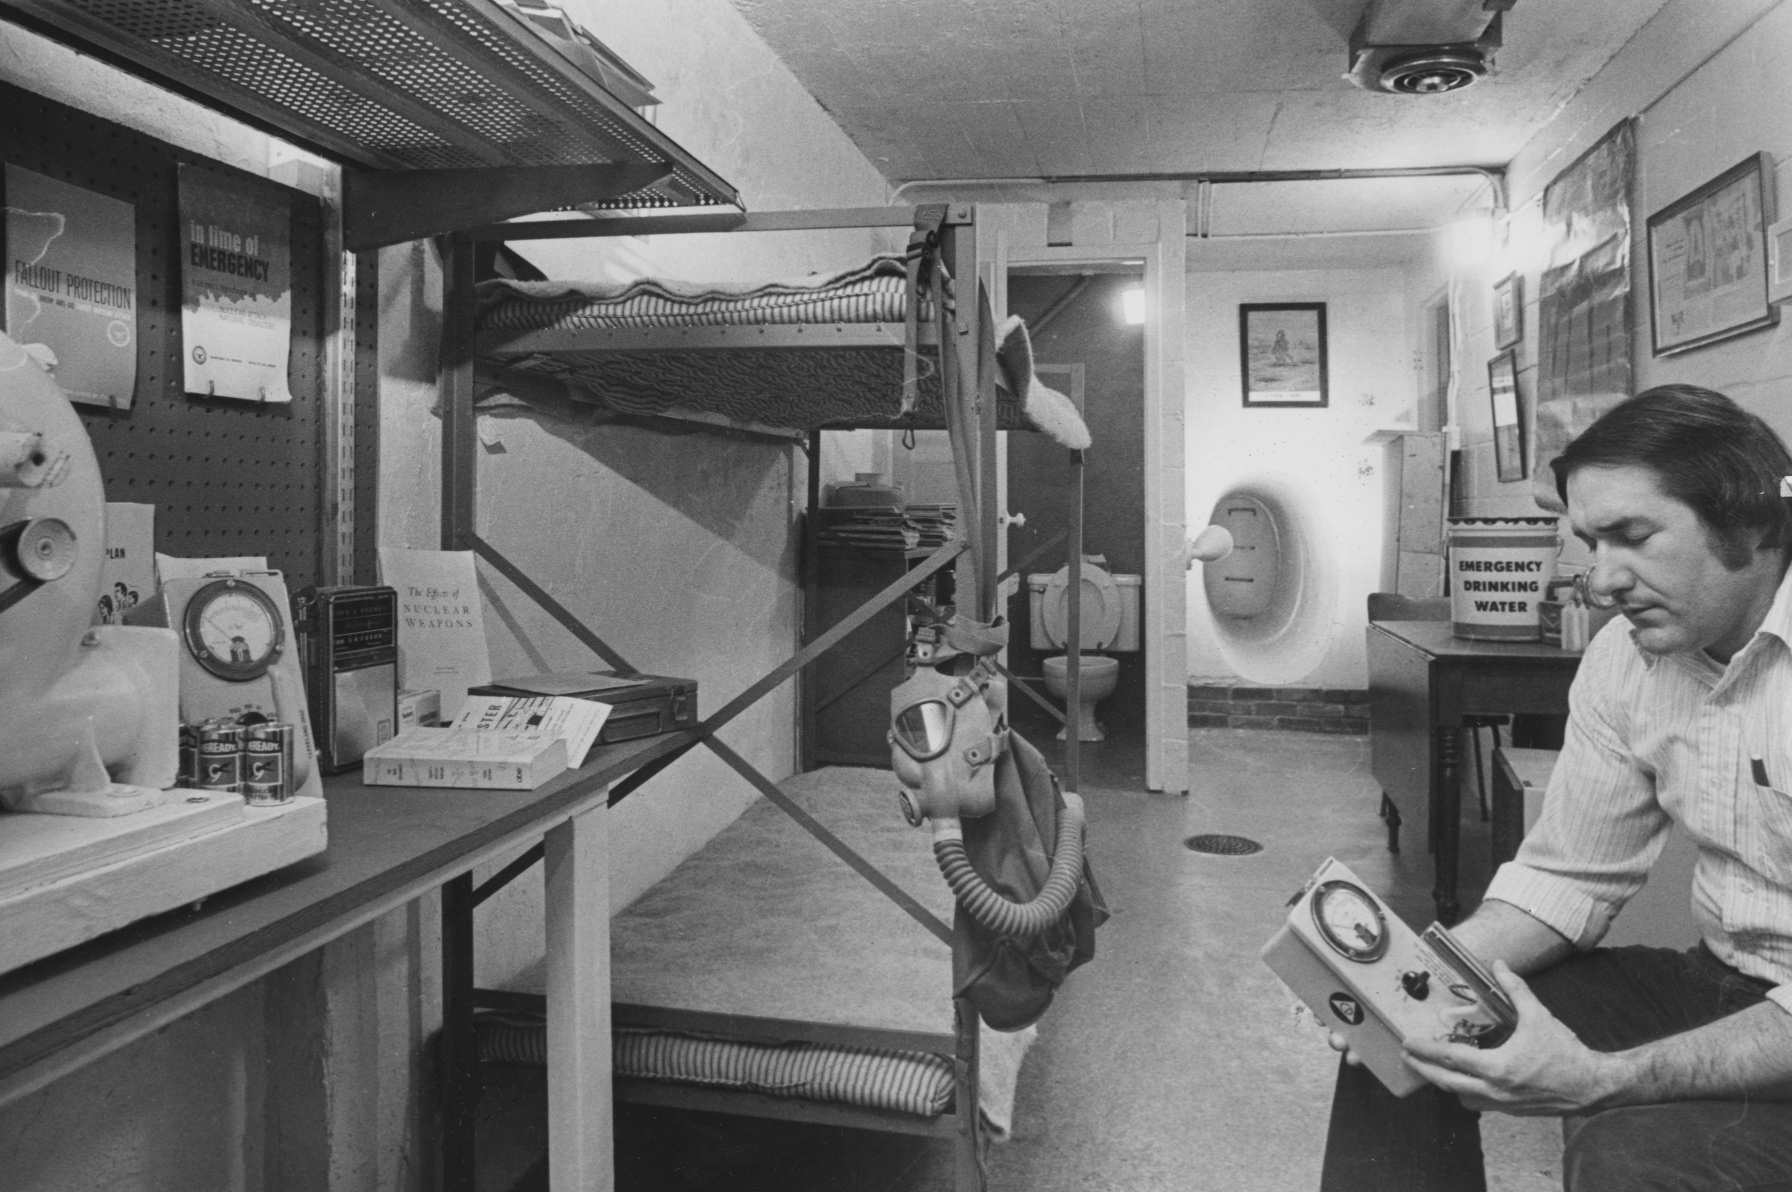 April 14, 1980: James Allan, of Pleasant Hills, double-checks a radiation detector in a fallout shelter located in the basement of his home. He would get an A plus grade in the survey being conducted by Allegheny County authorities. (Bill Levis/Post-Gazette)